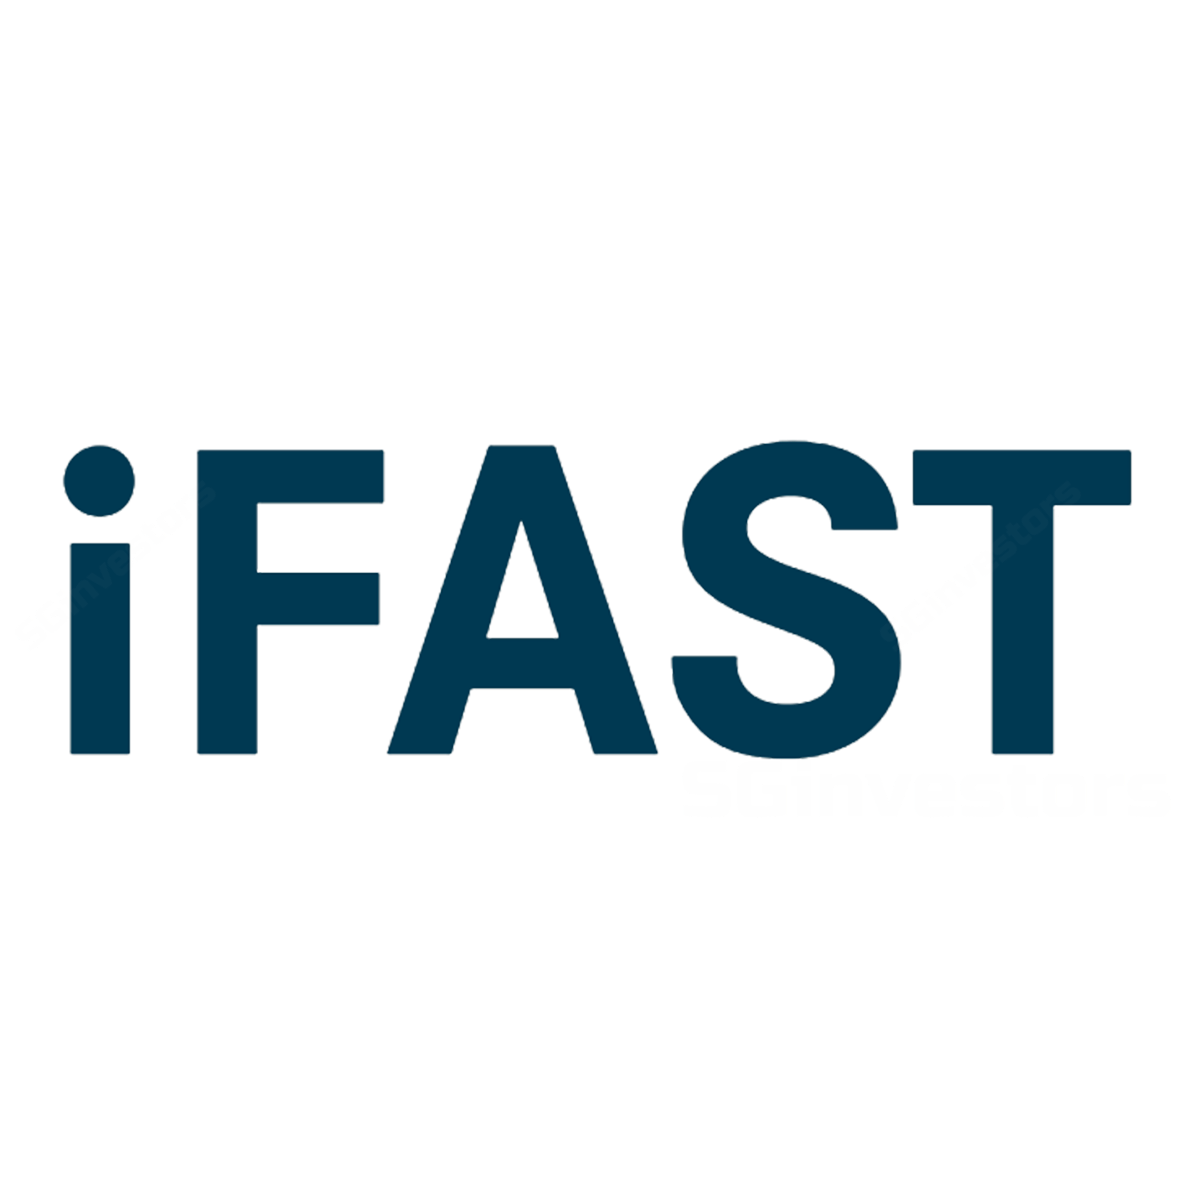 IFAST Corporation (IFAST SP) - DBS Vickers 2017-07-31: A Strong Set Of 1H17 Results